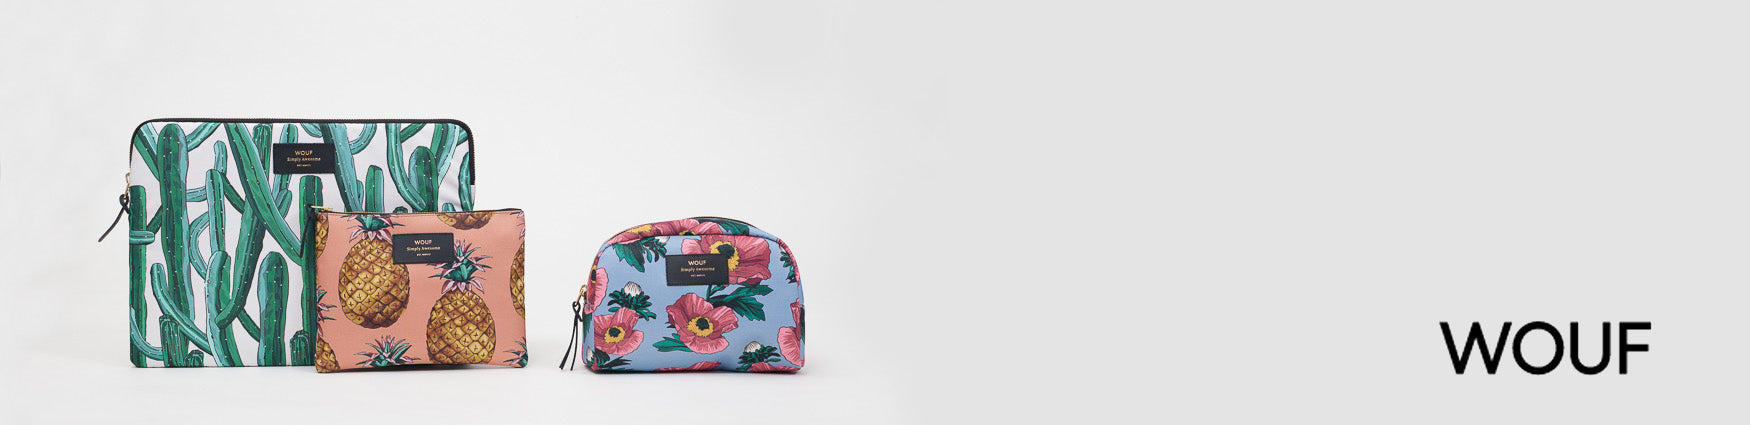 Shop colourful printed Wouf accessories from tech sleeves to beauty bags at Roo's Beach UK